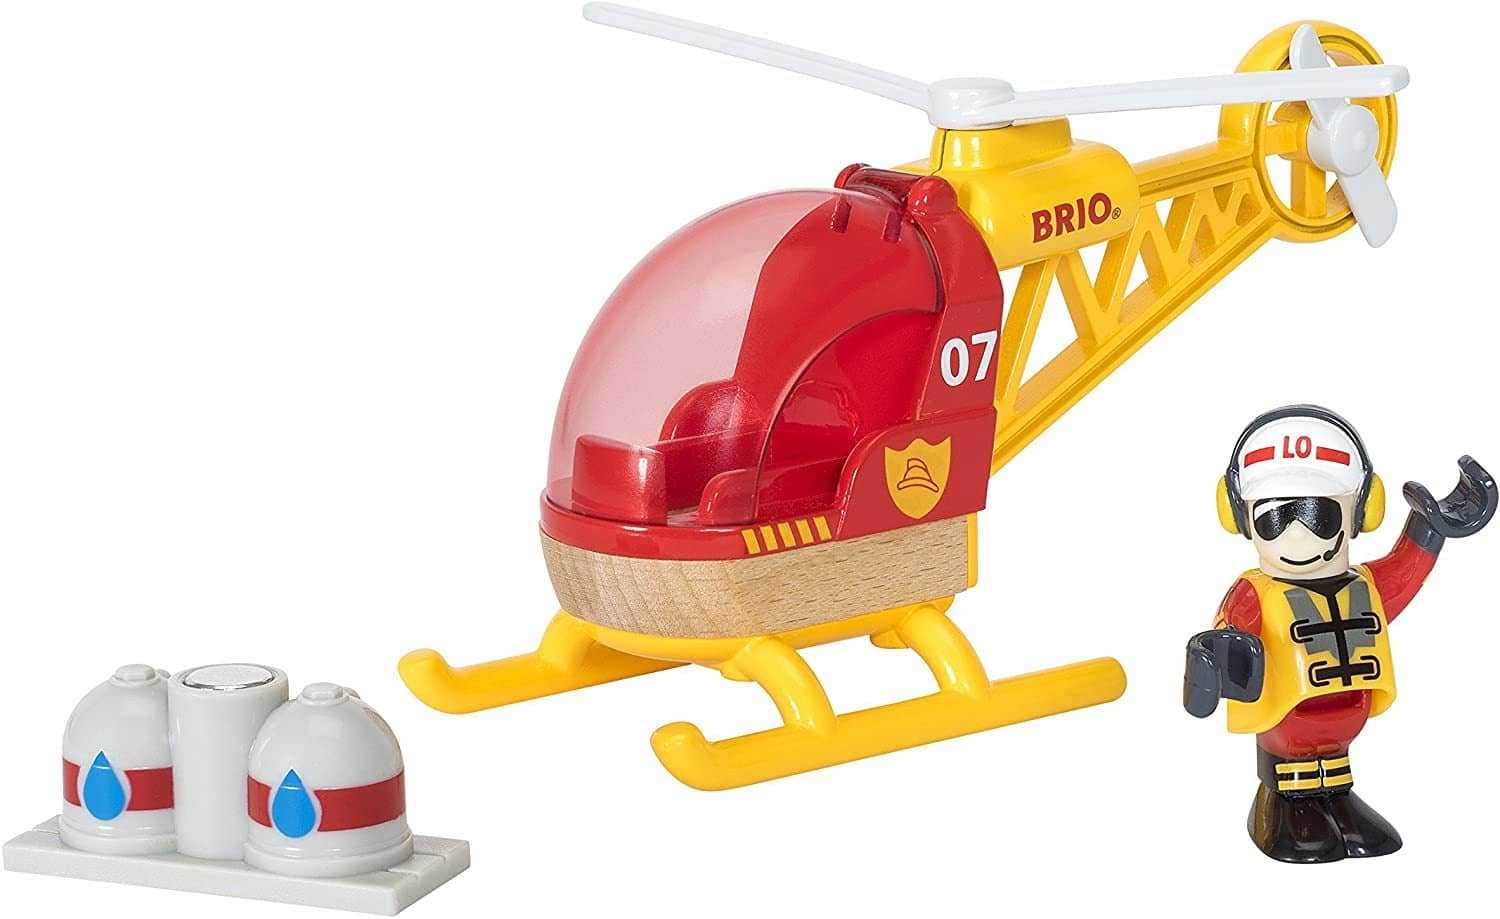 Brio World - 33797 Firefighter Helicopter | 3 Piece Helicopter Toy For Kids Ages 3 And Up-Kidding Around NYC